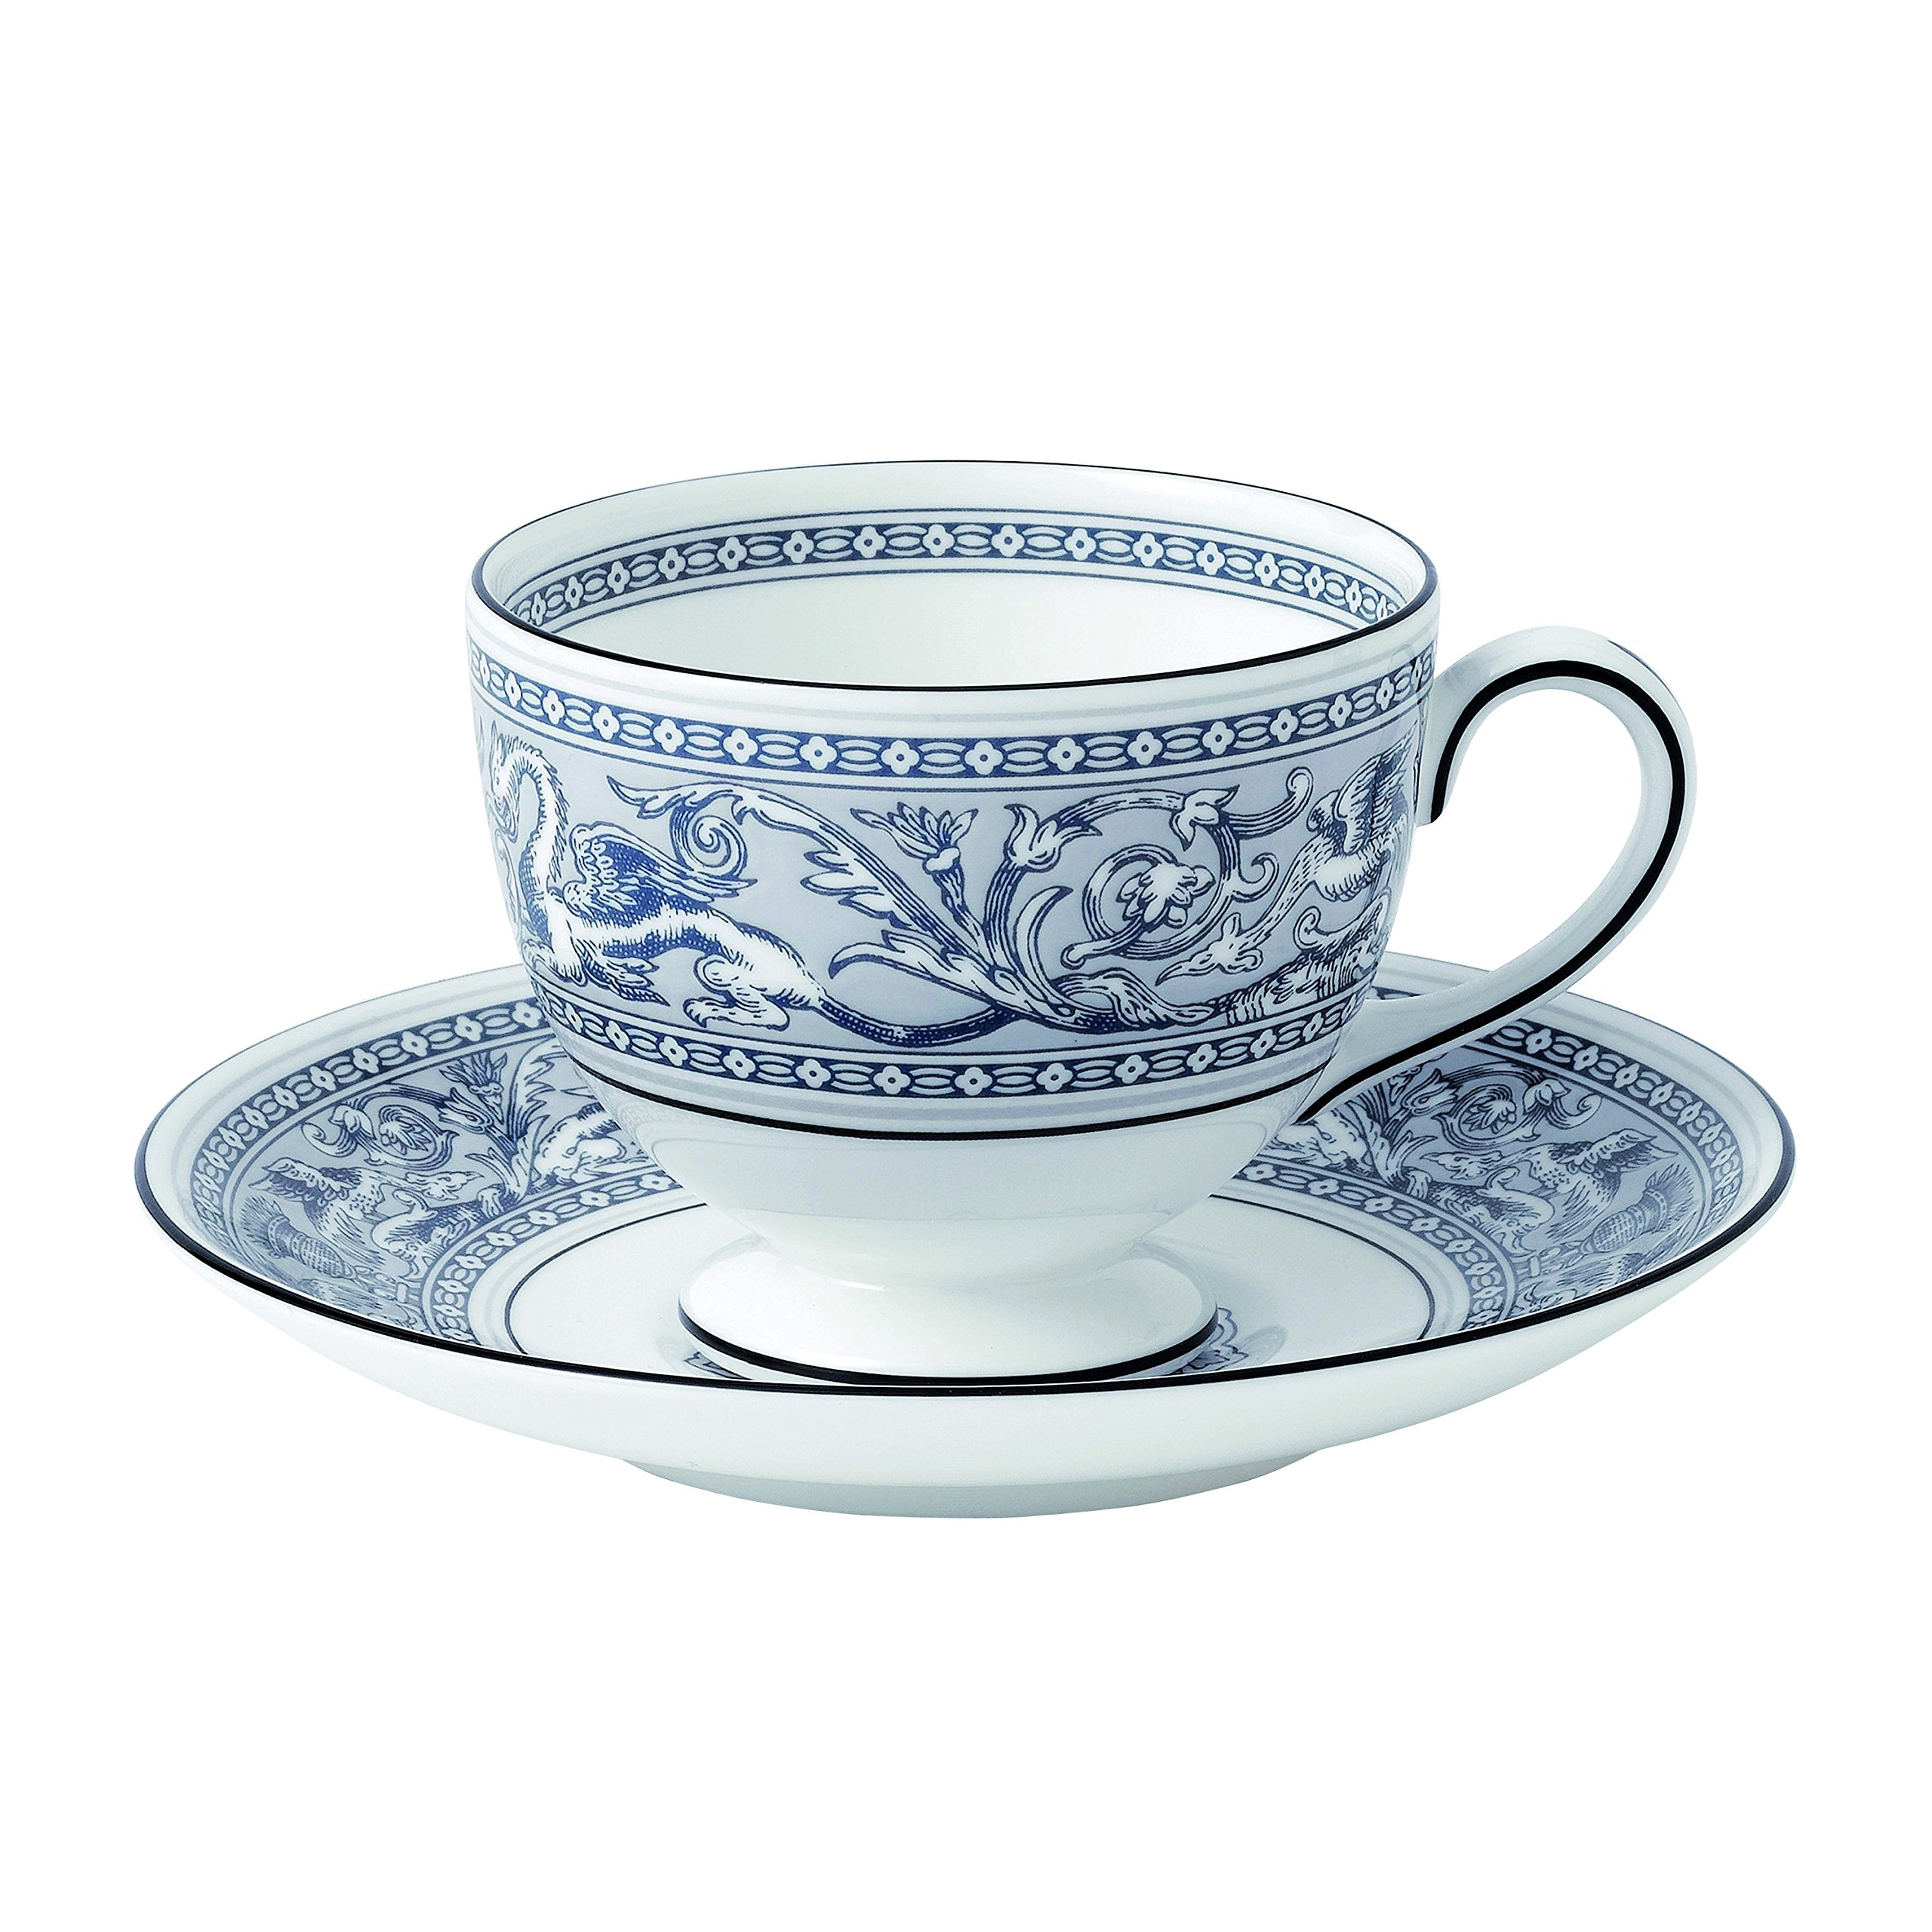 Wedgwood Florentine Teacup & Saucer Set, Indigo White/Blue